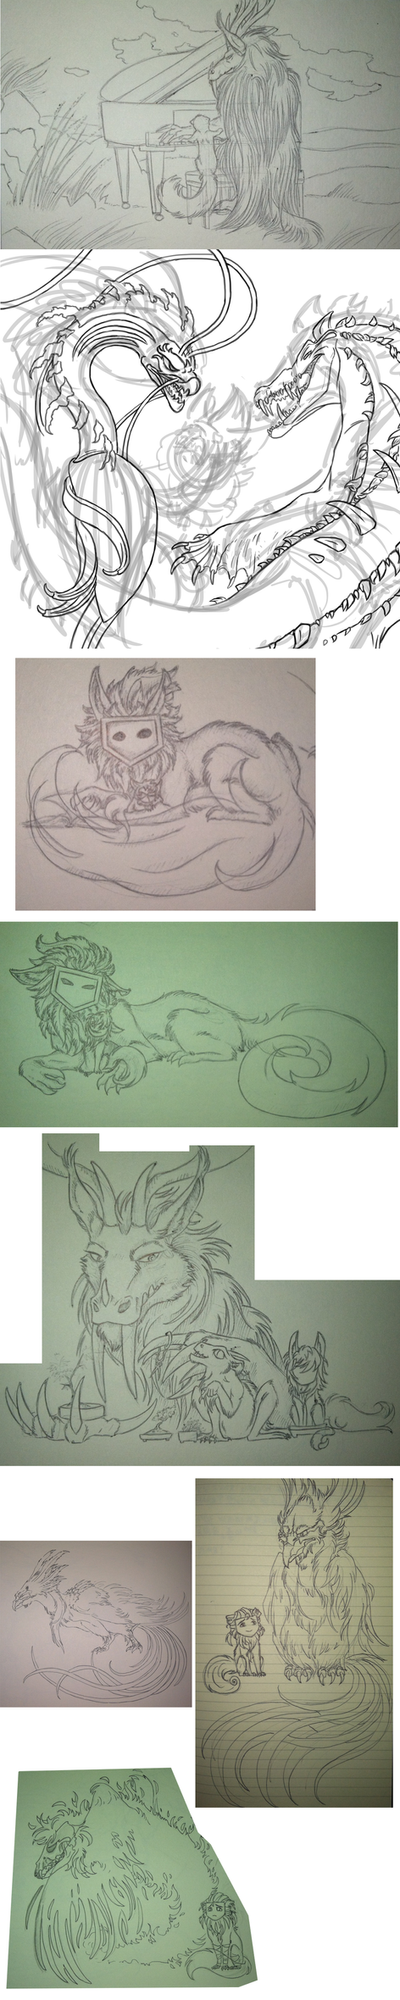 Troll Sketchdump 3: Also Giant by Brokenfangs